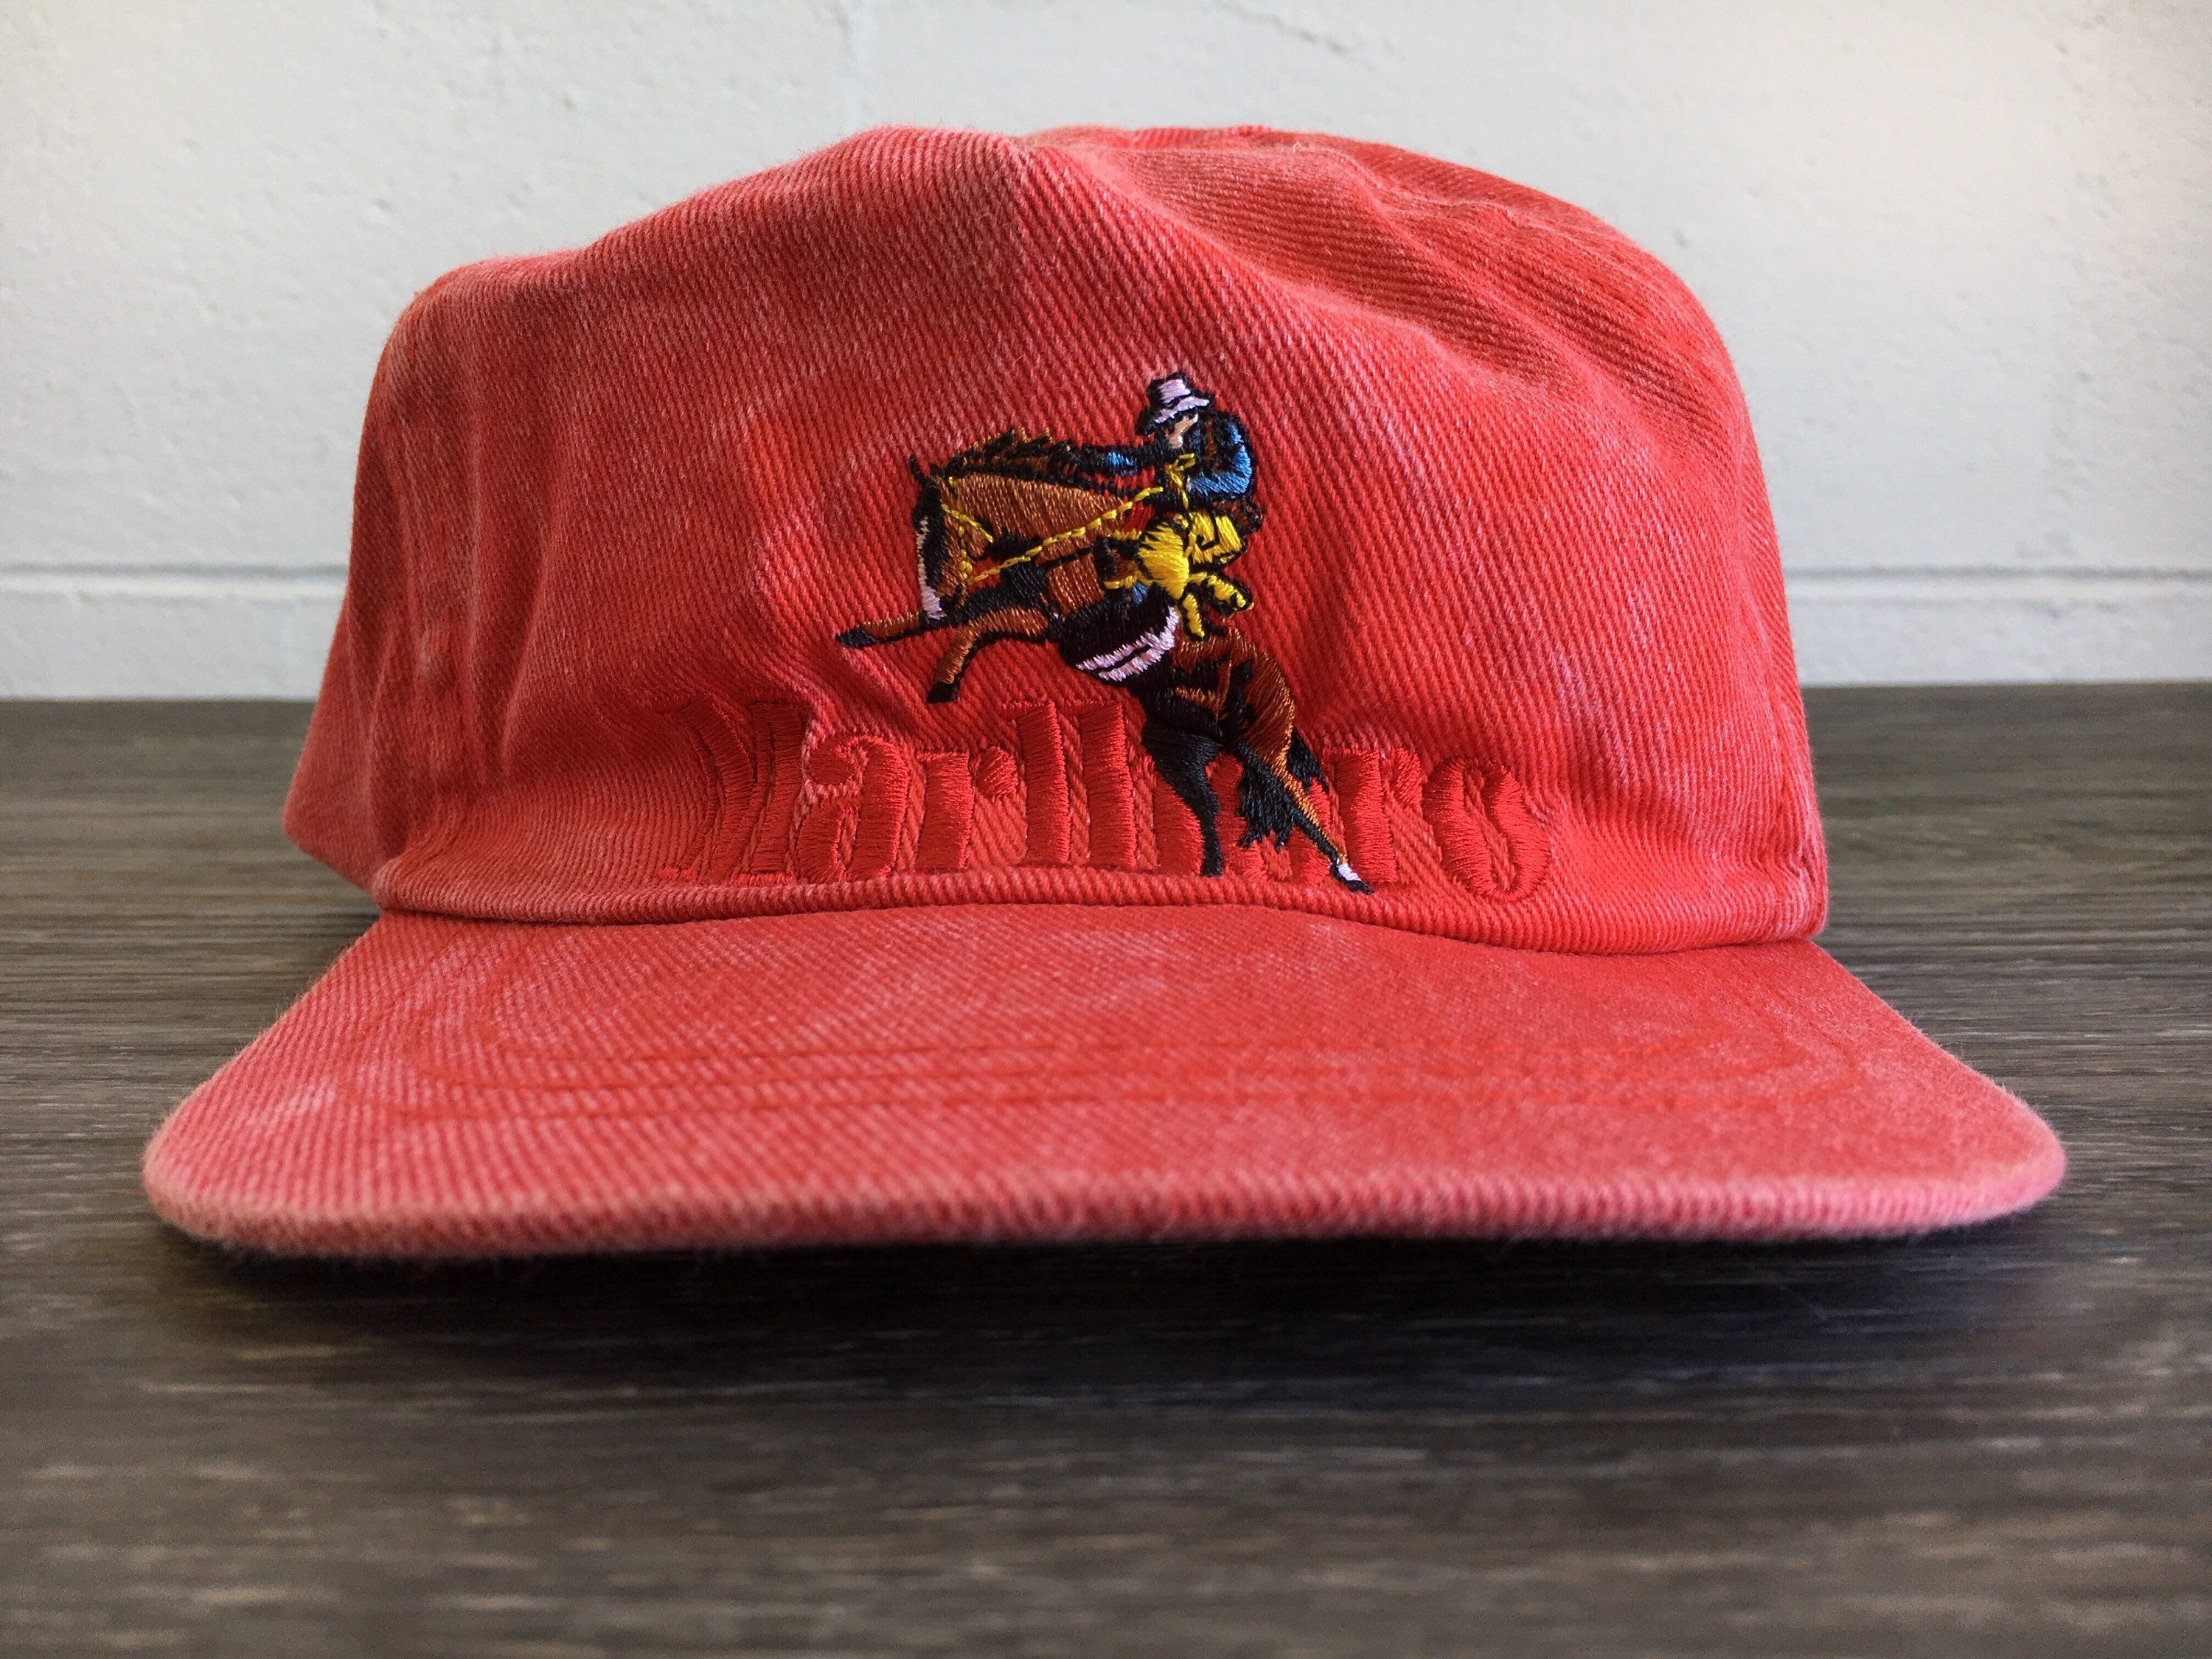 400df719d13 Marlboro Red Denim Hat Snapback Vintage 90s Cowboy Bucking Bronco Smoking  Cigarettes Iconic Heavy Sewn Graphic Cap by sweetVTGtshirt on Etsy